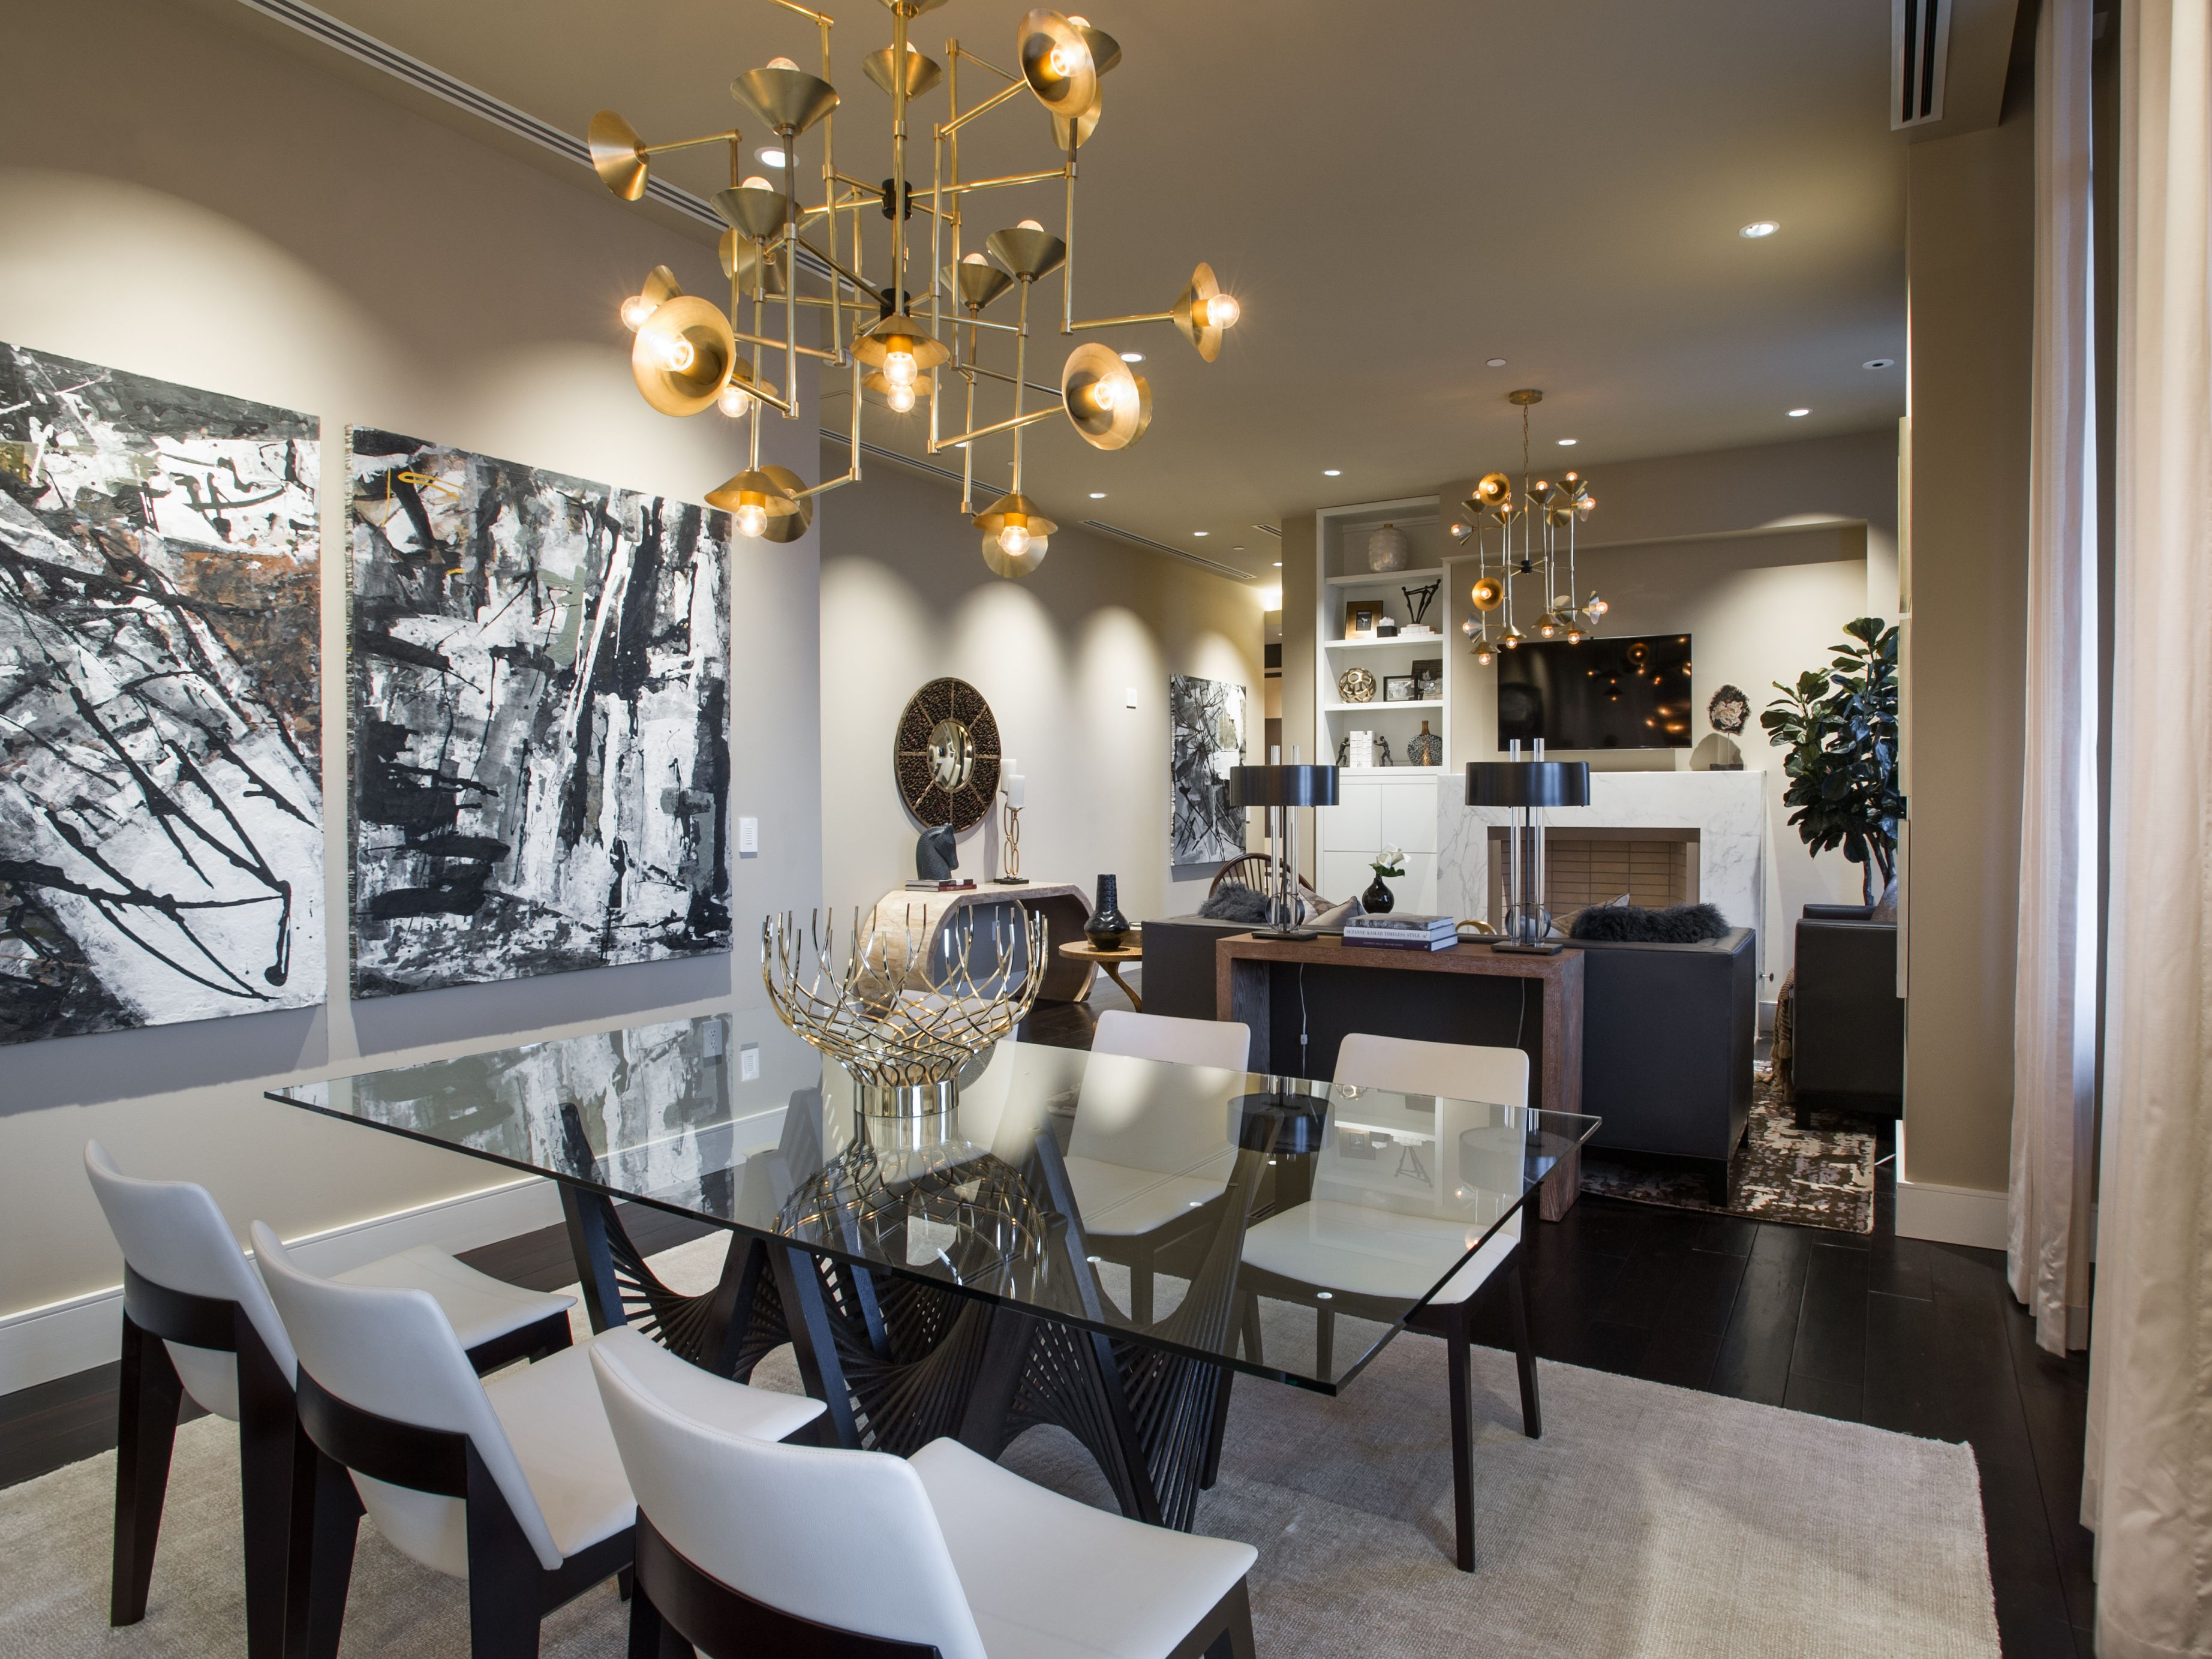 Gorgeous dining room Love the glass topped table and dramatic art